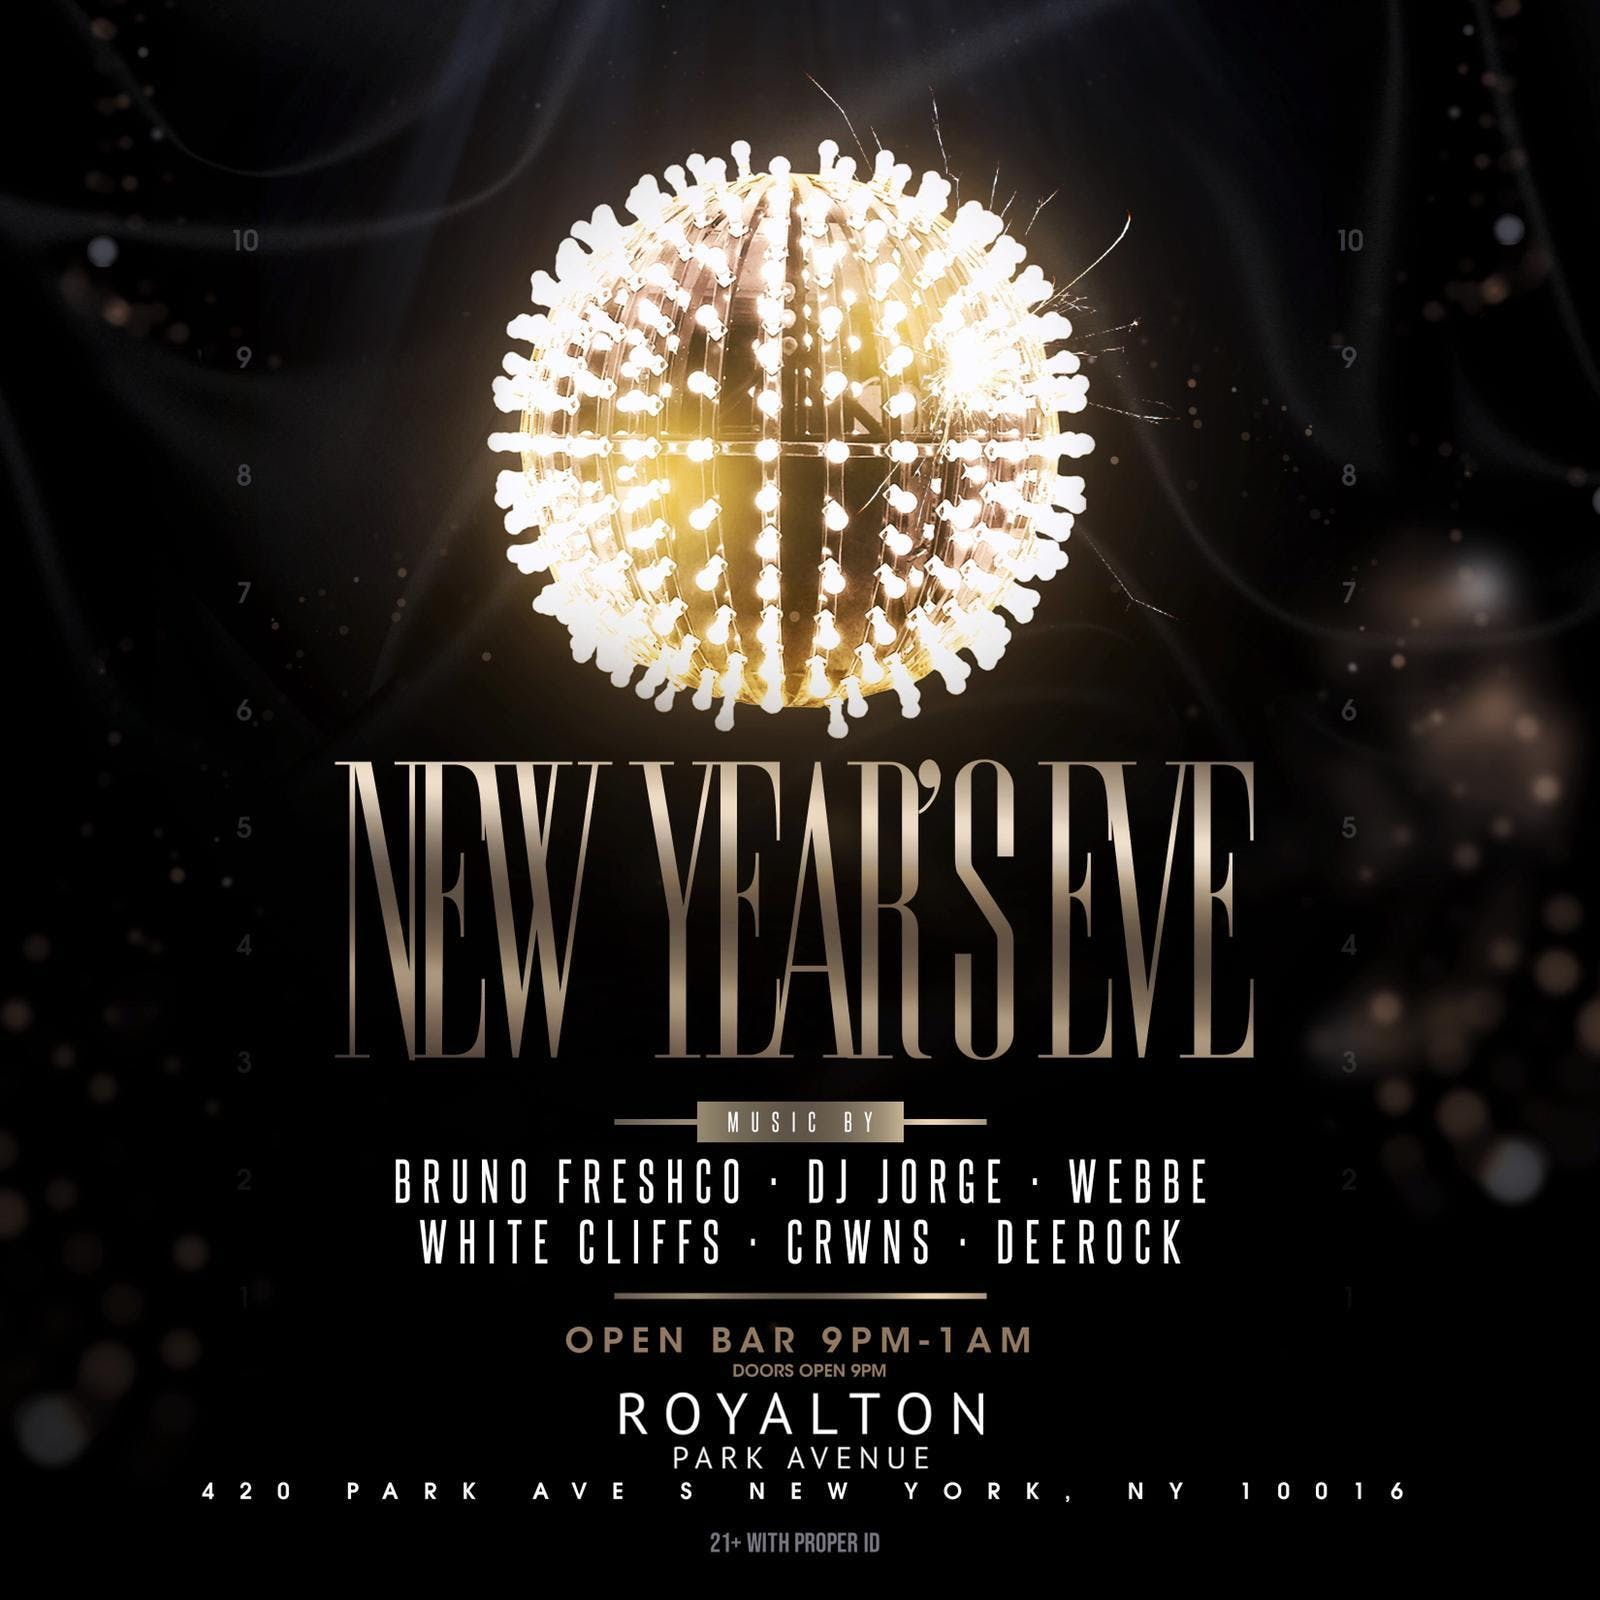 New Year's Eve 2019 at Royalton Park Avenue w/ 4 Hour Open Bar